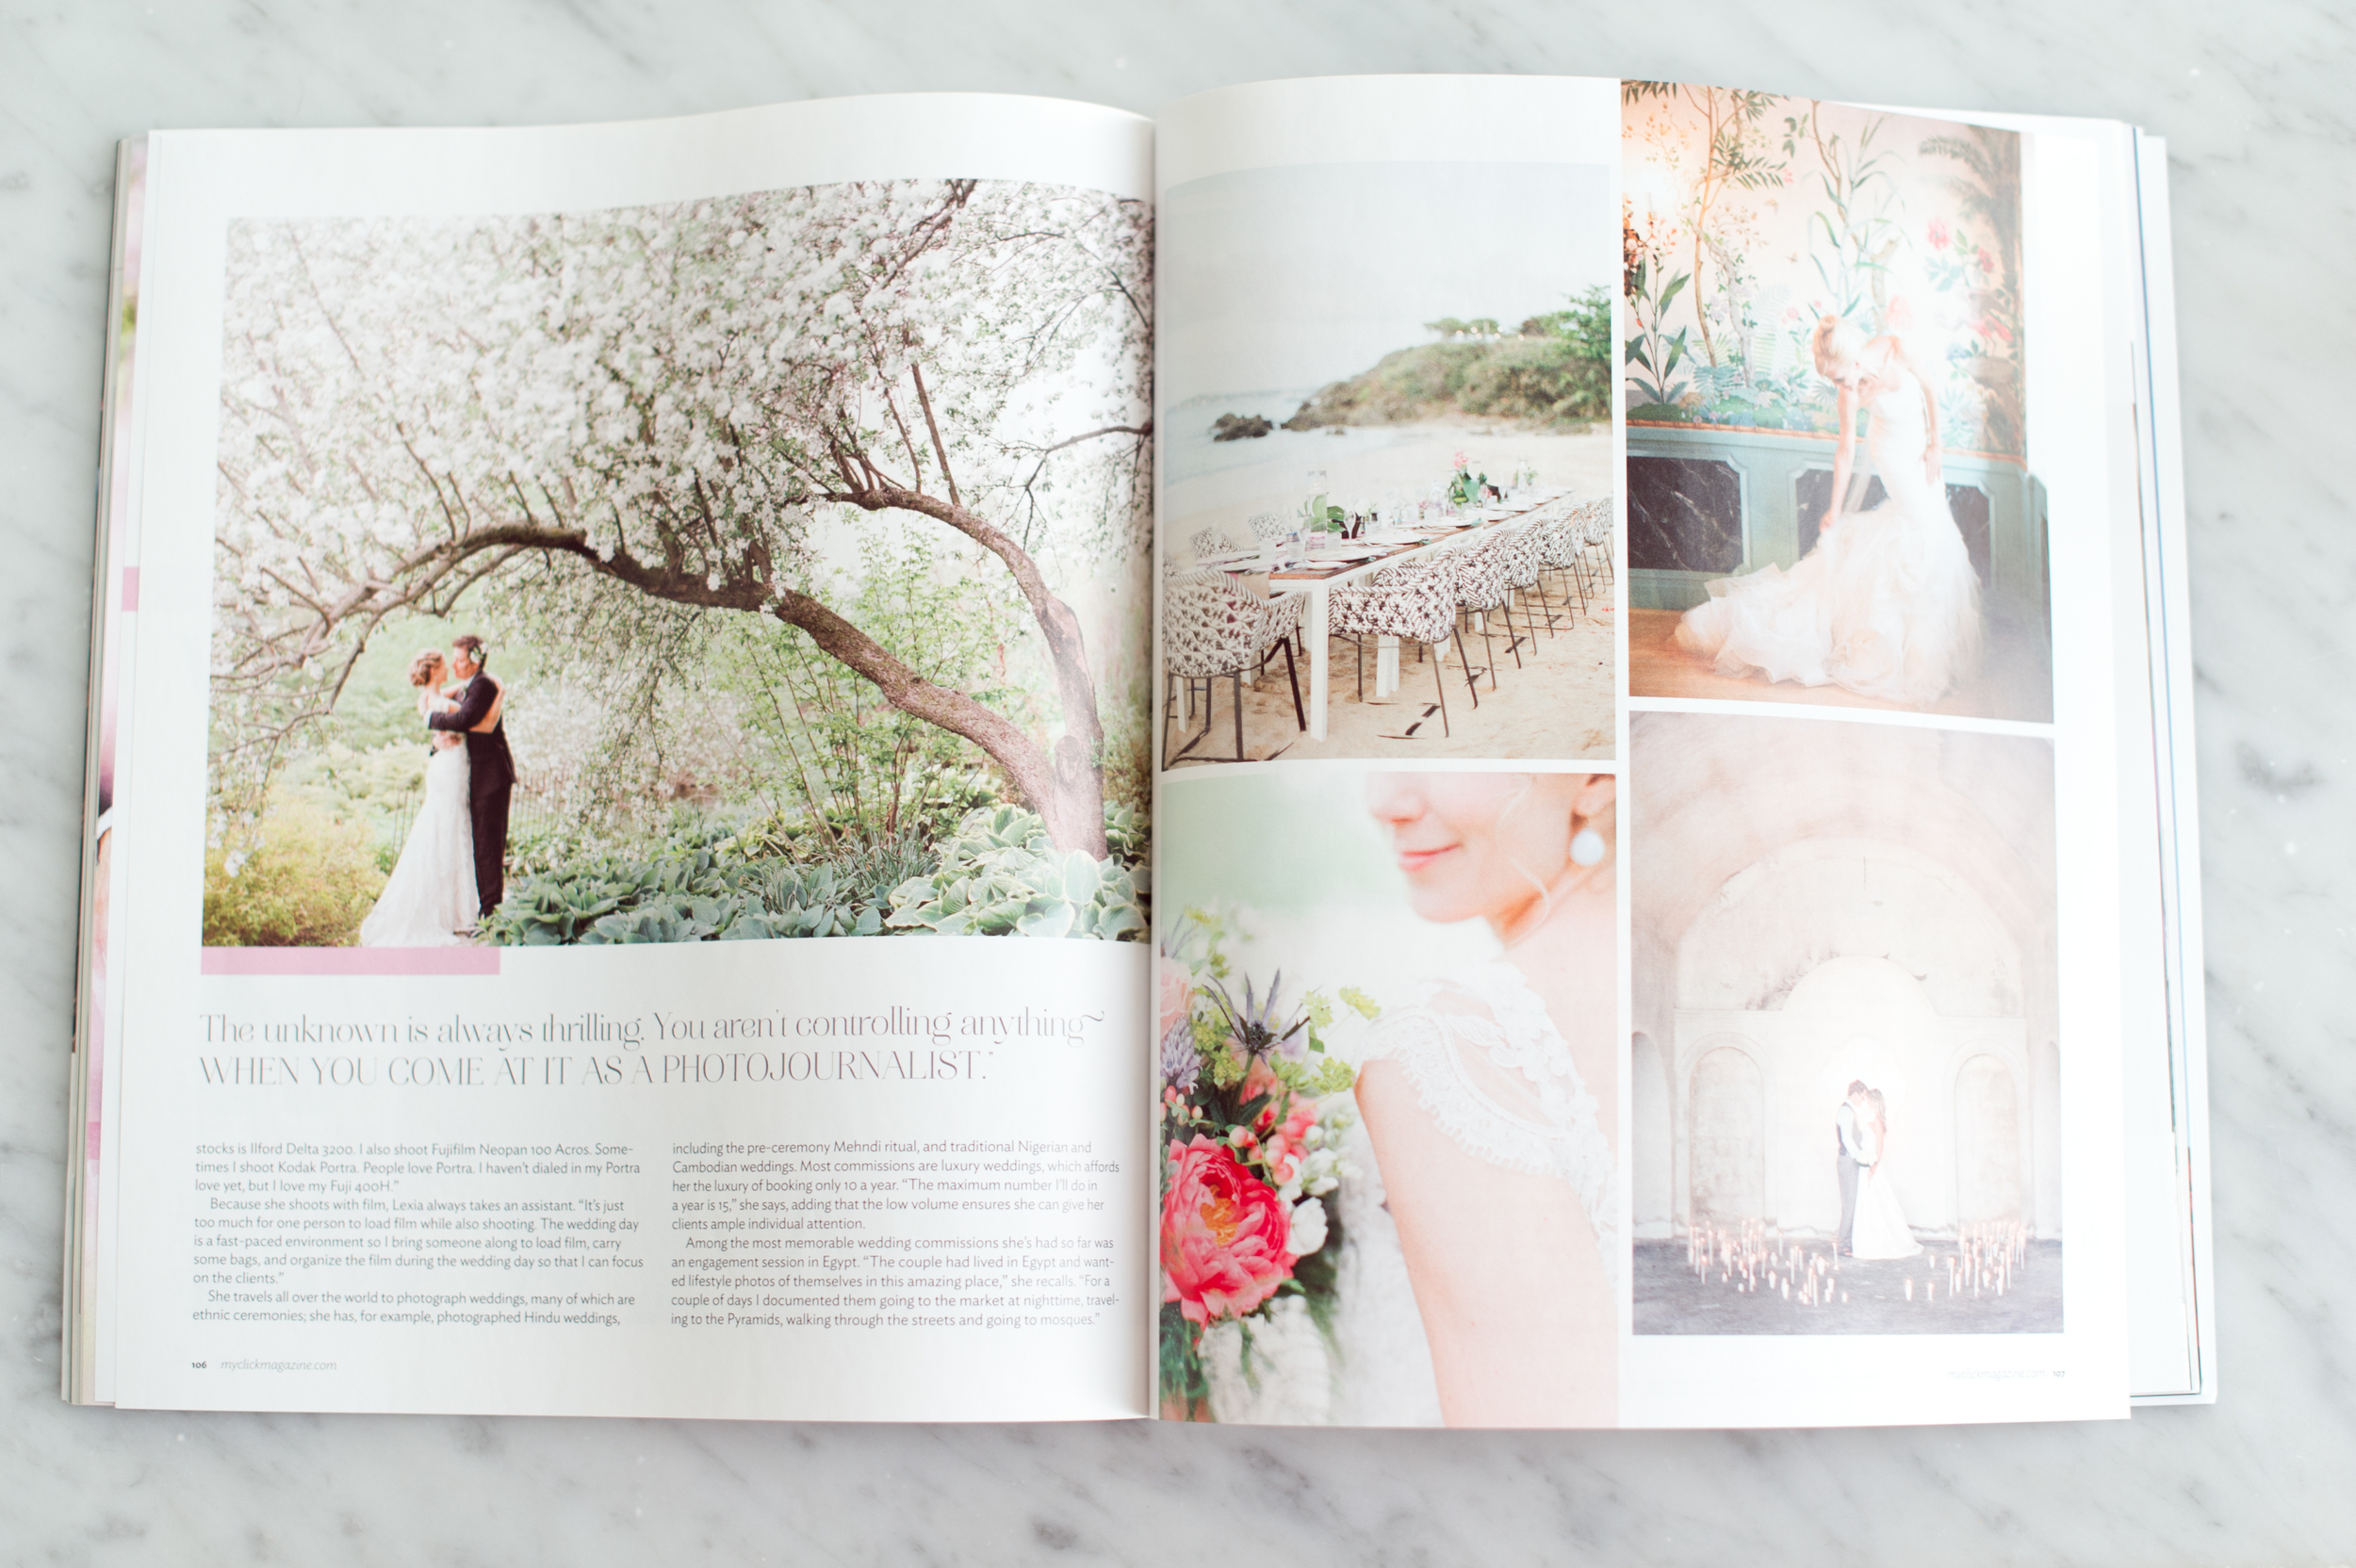 Destination Wedding Photographer, Lexia Frank, is a portland oregon wedding photographer specializing in fine art wedding photography. she is published in Click Magazine for her work with luxury weddings and how she shoots film for destination and ethnic weddings.